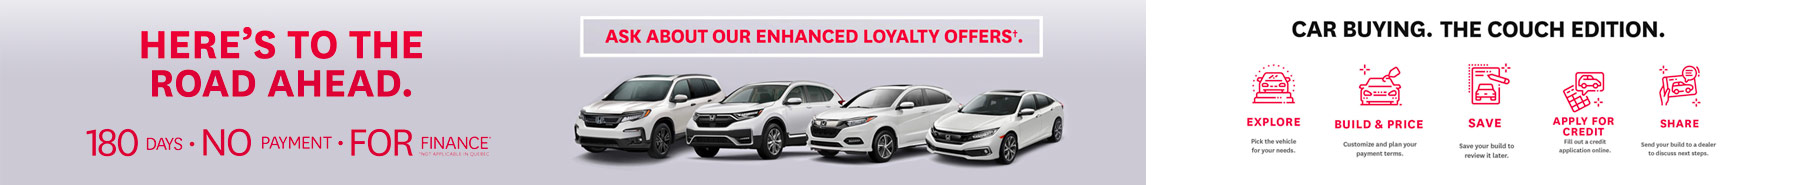 Honda National Offer June2020 68x7